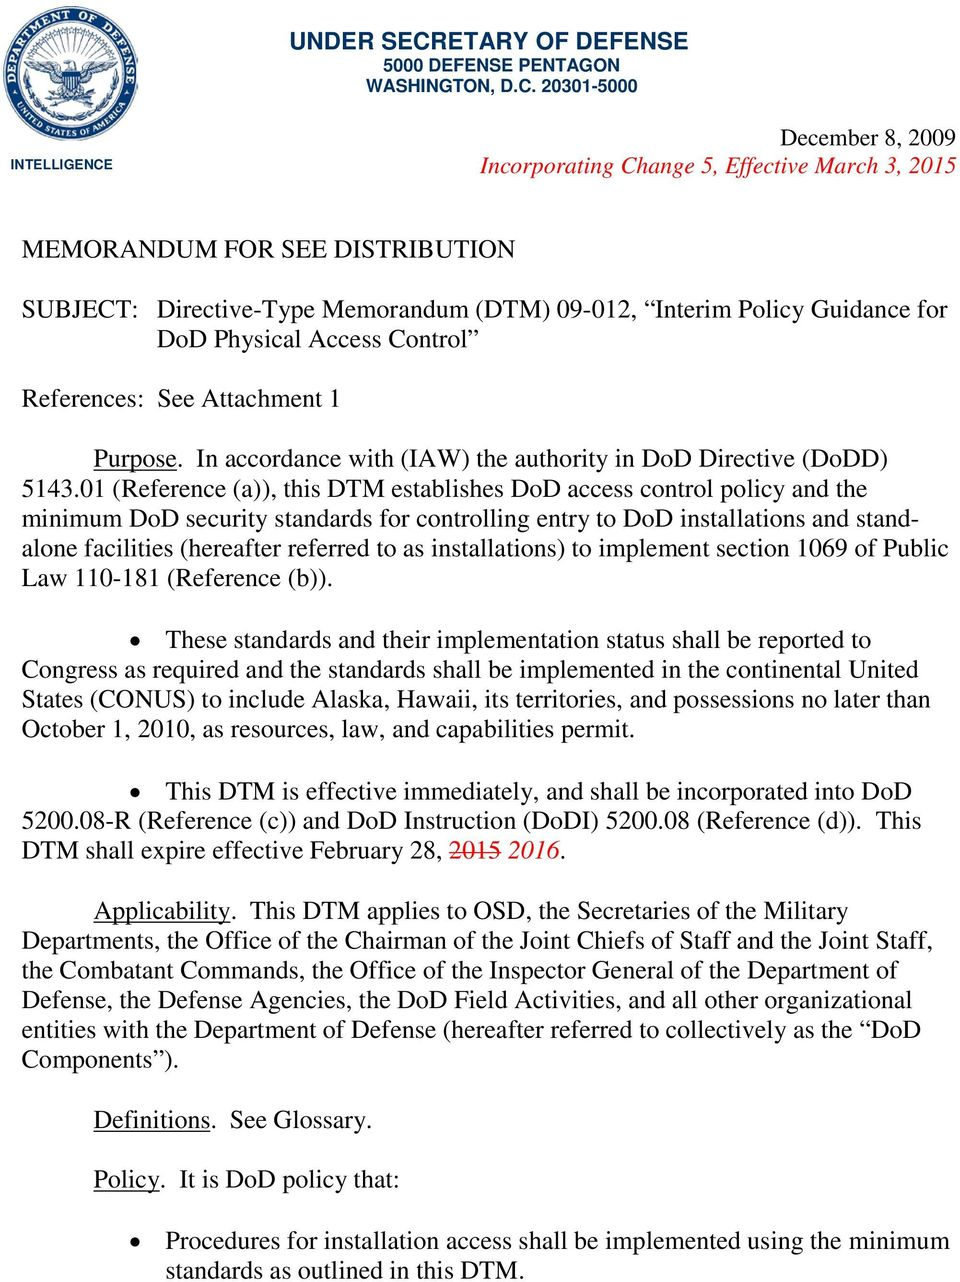 20301-5000 INTELLIGENCE December 8, 2009 Incorporating Change 5, Effective March 3, 2015 MEMORANDUM FOR SEE DISTRIBUTION SUBJECT: Directive-Type Memorandum (DTM) 09-012, Interim Policy Guidance for